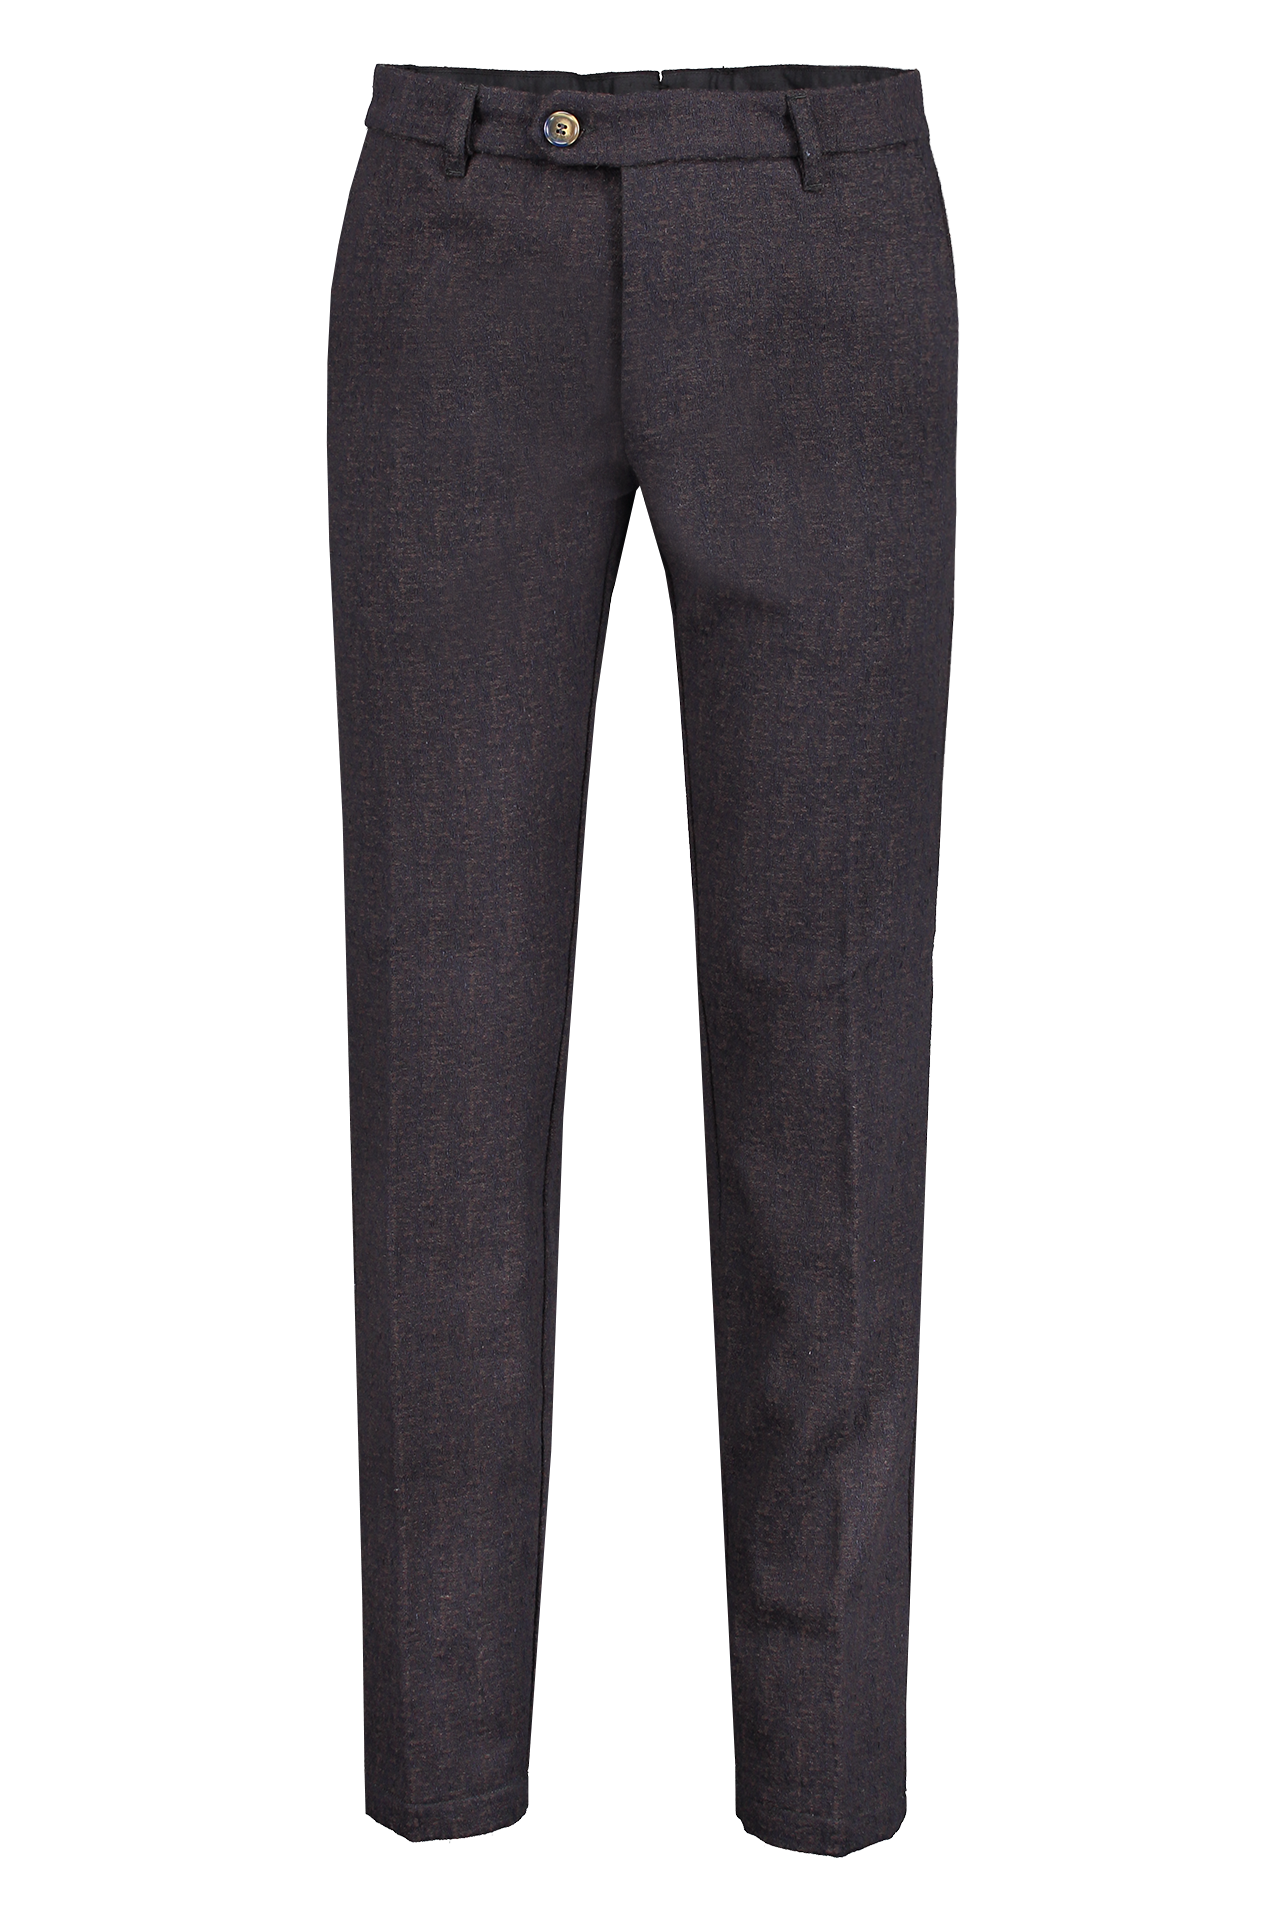 Front view image of JW Brine Men's James 18 Cotton/Wool Chino Brown